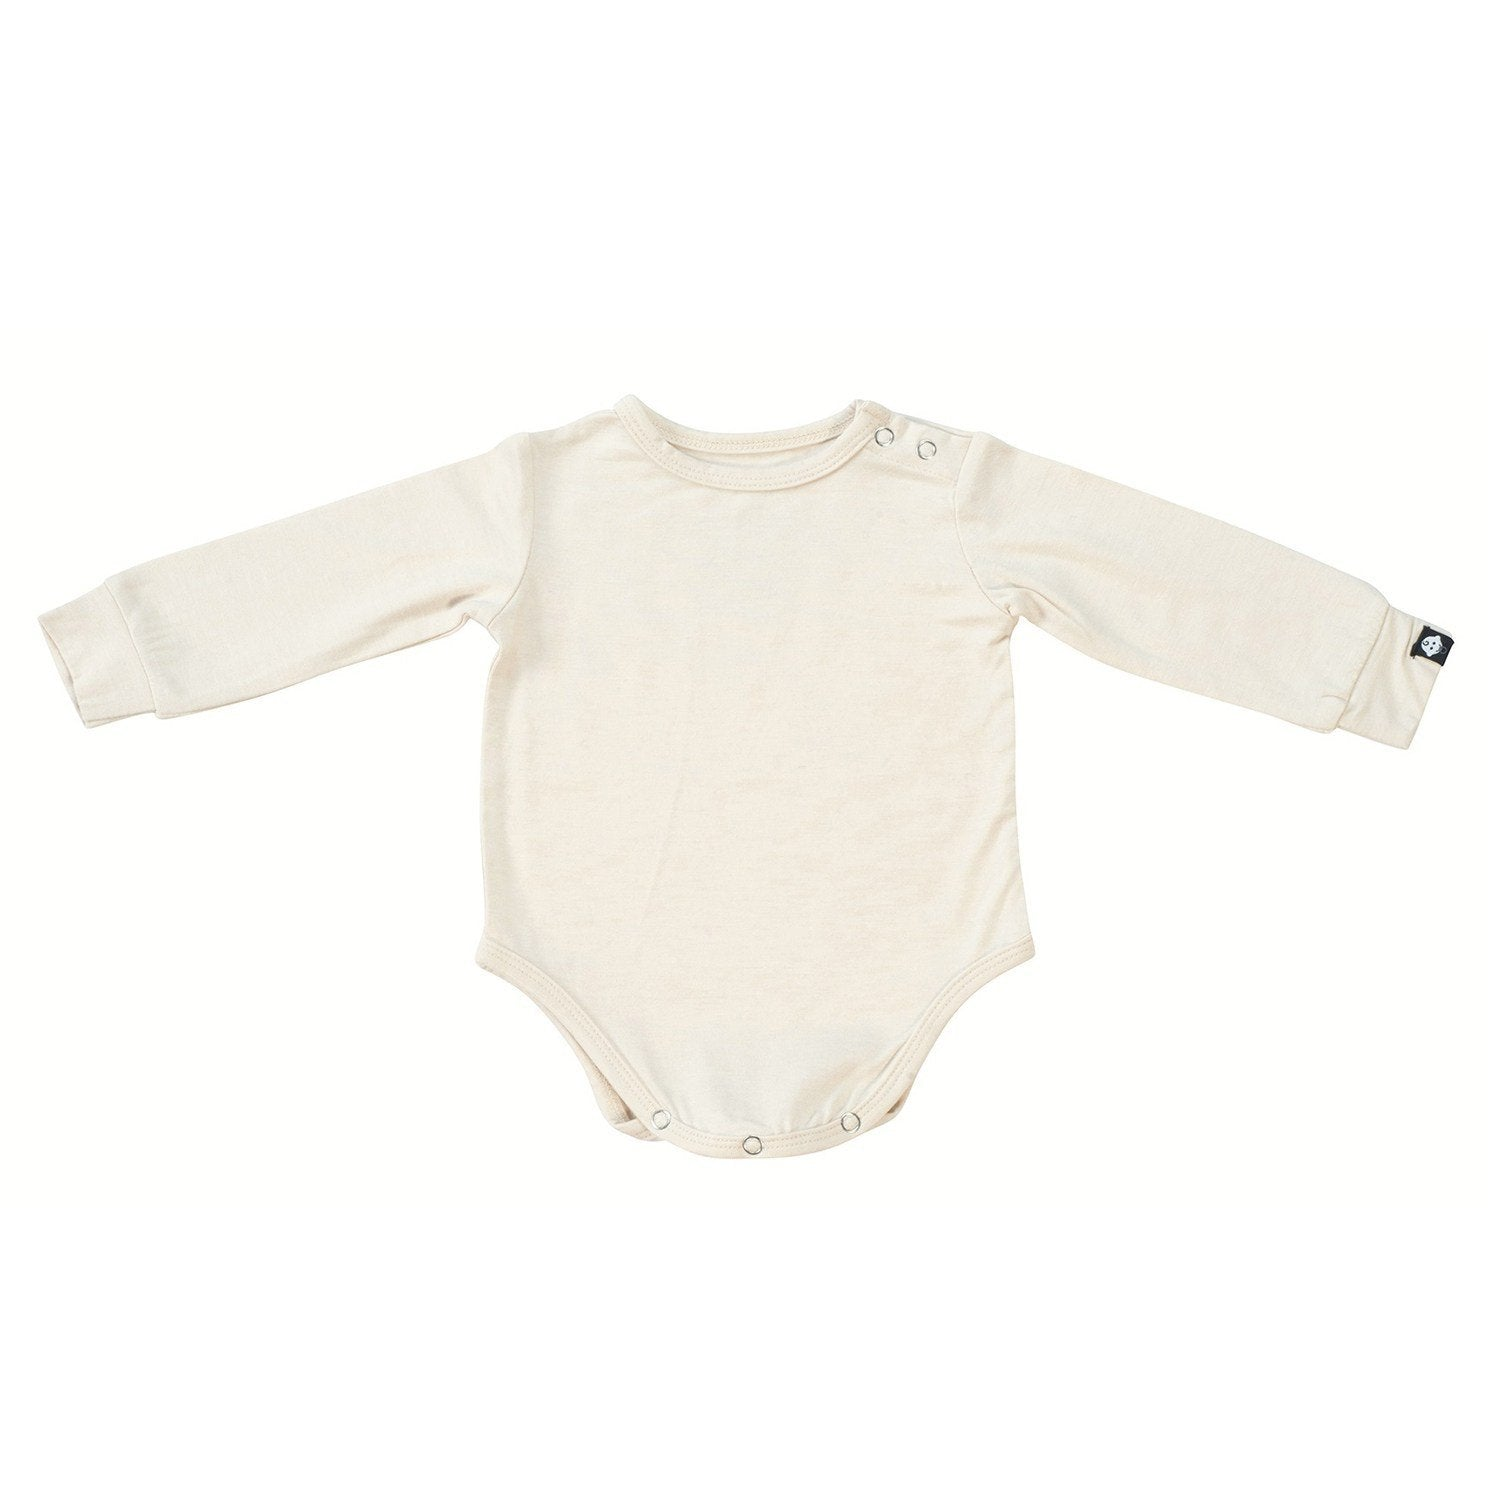 L/S Bodysuit - Cream Heather - Sweet Bamboo